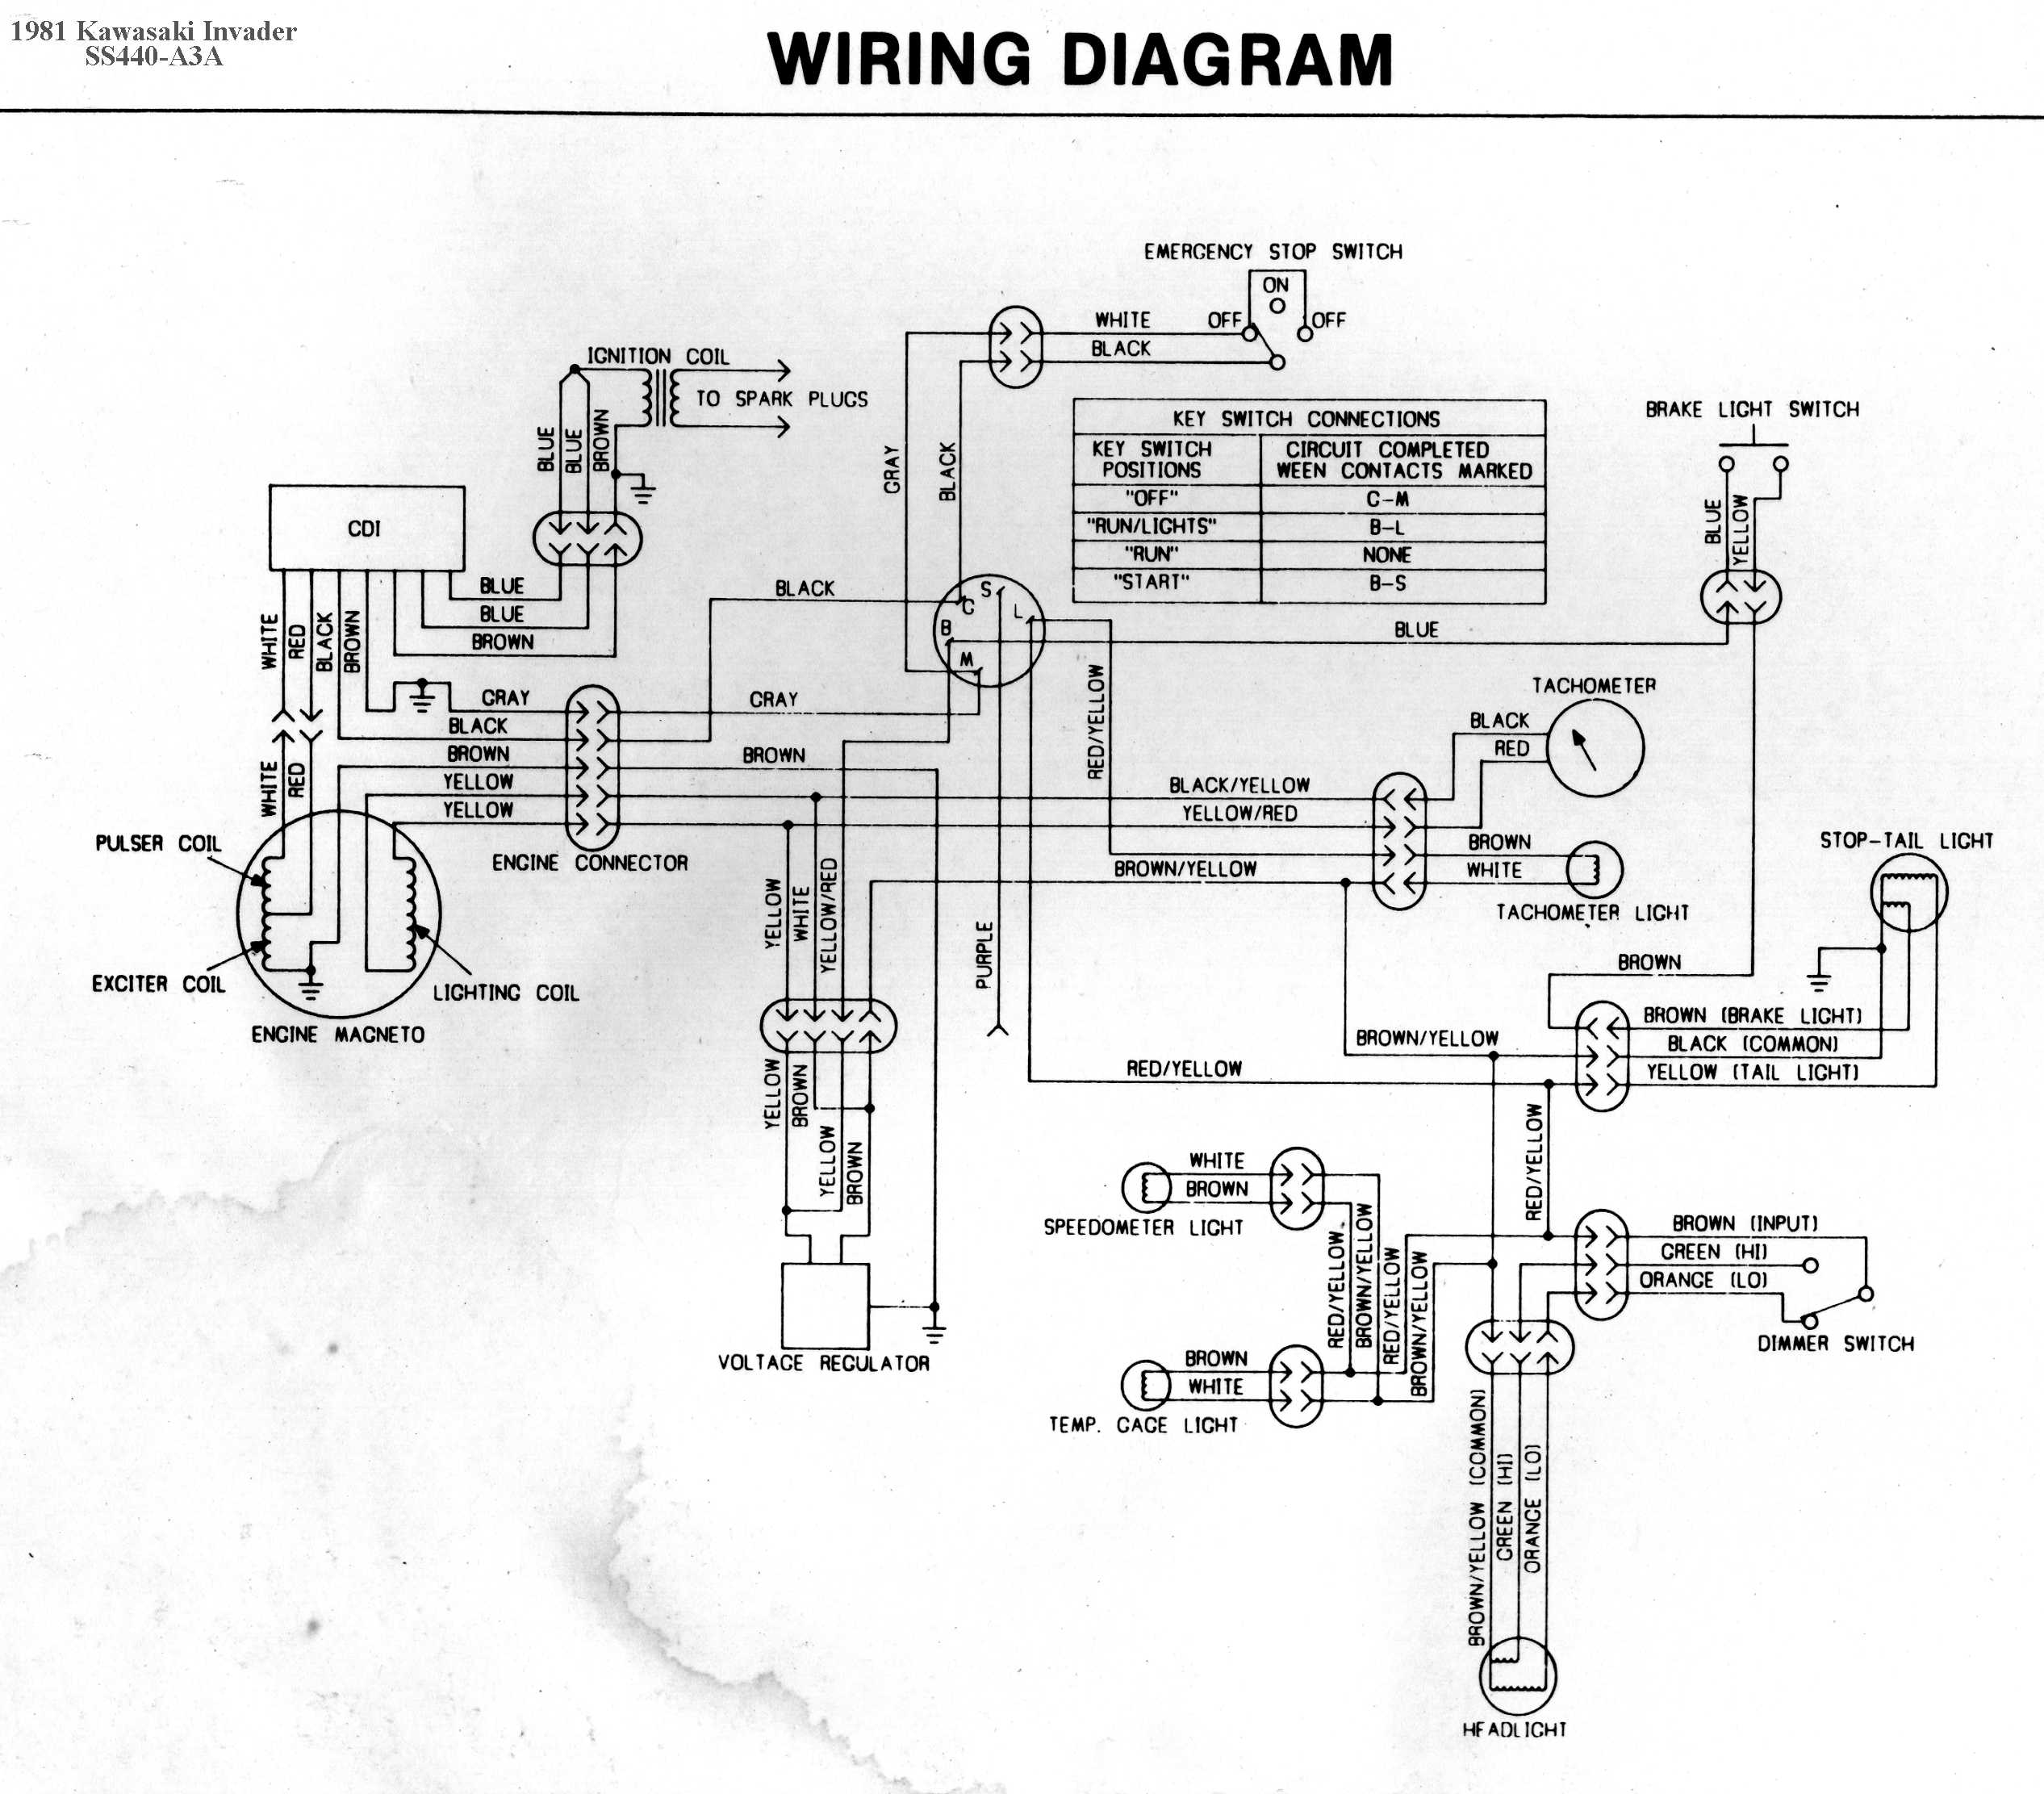 ss440a3a kawasaki invader snowmobile wiring diagrams 1981 kawasaki 440 ltd wiring diagram at bayanpartner.co